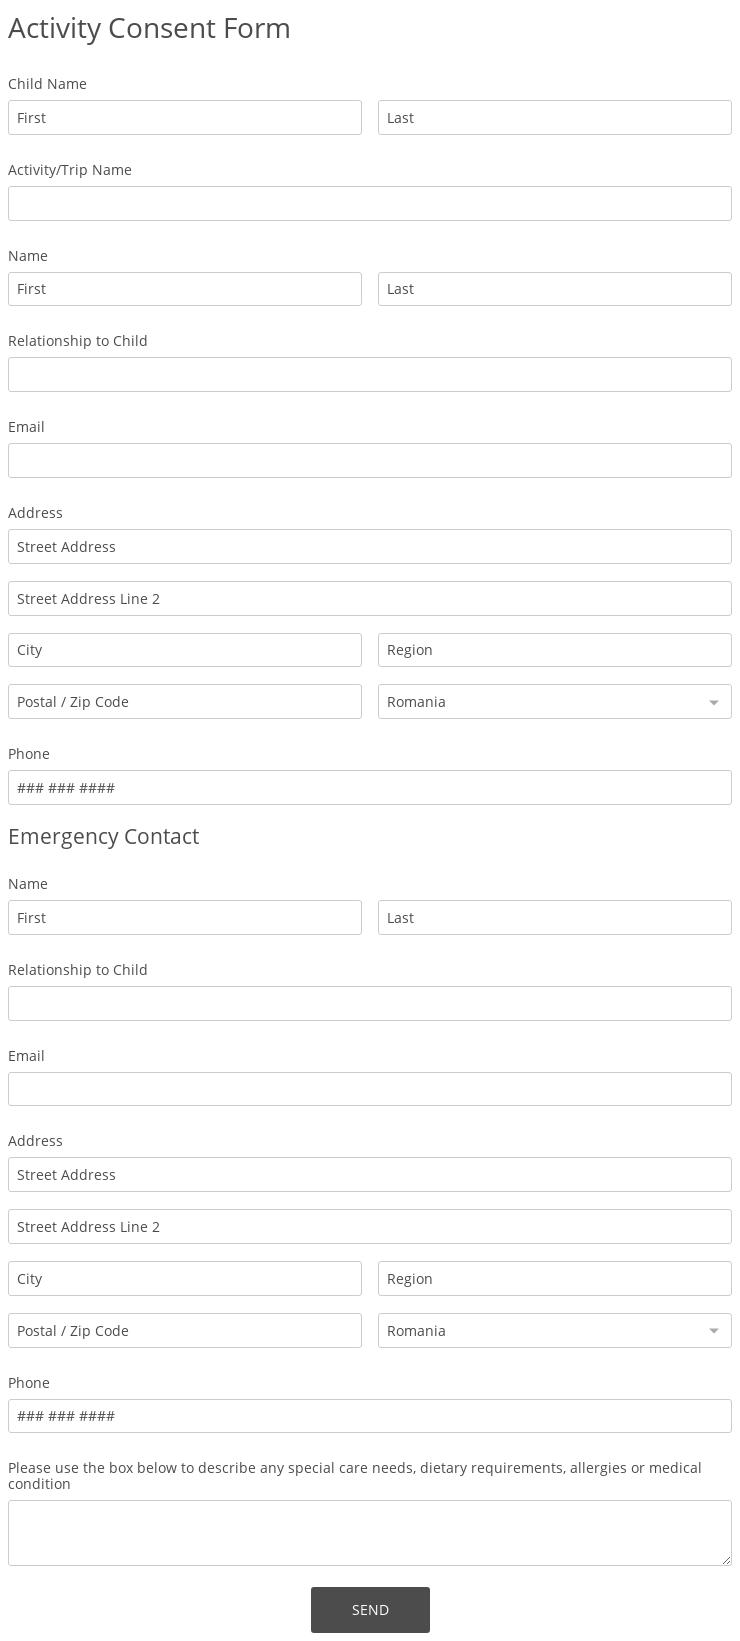 Activity Consent Form